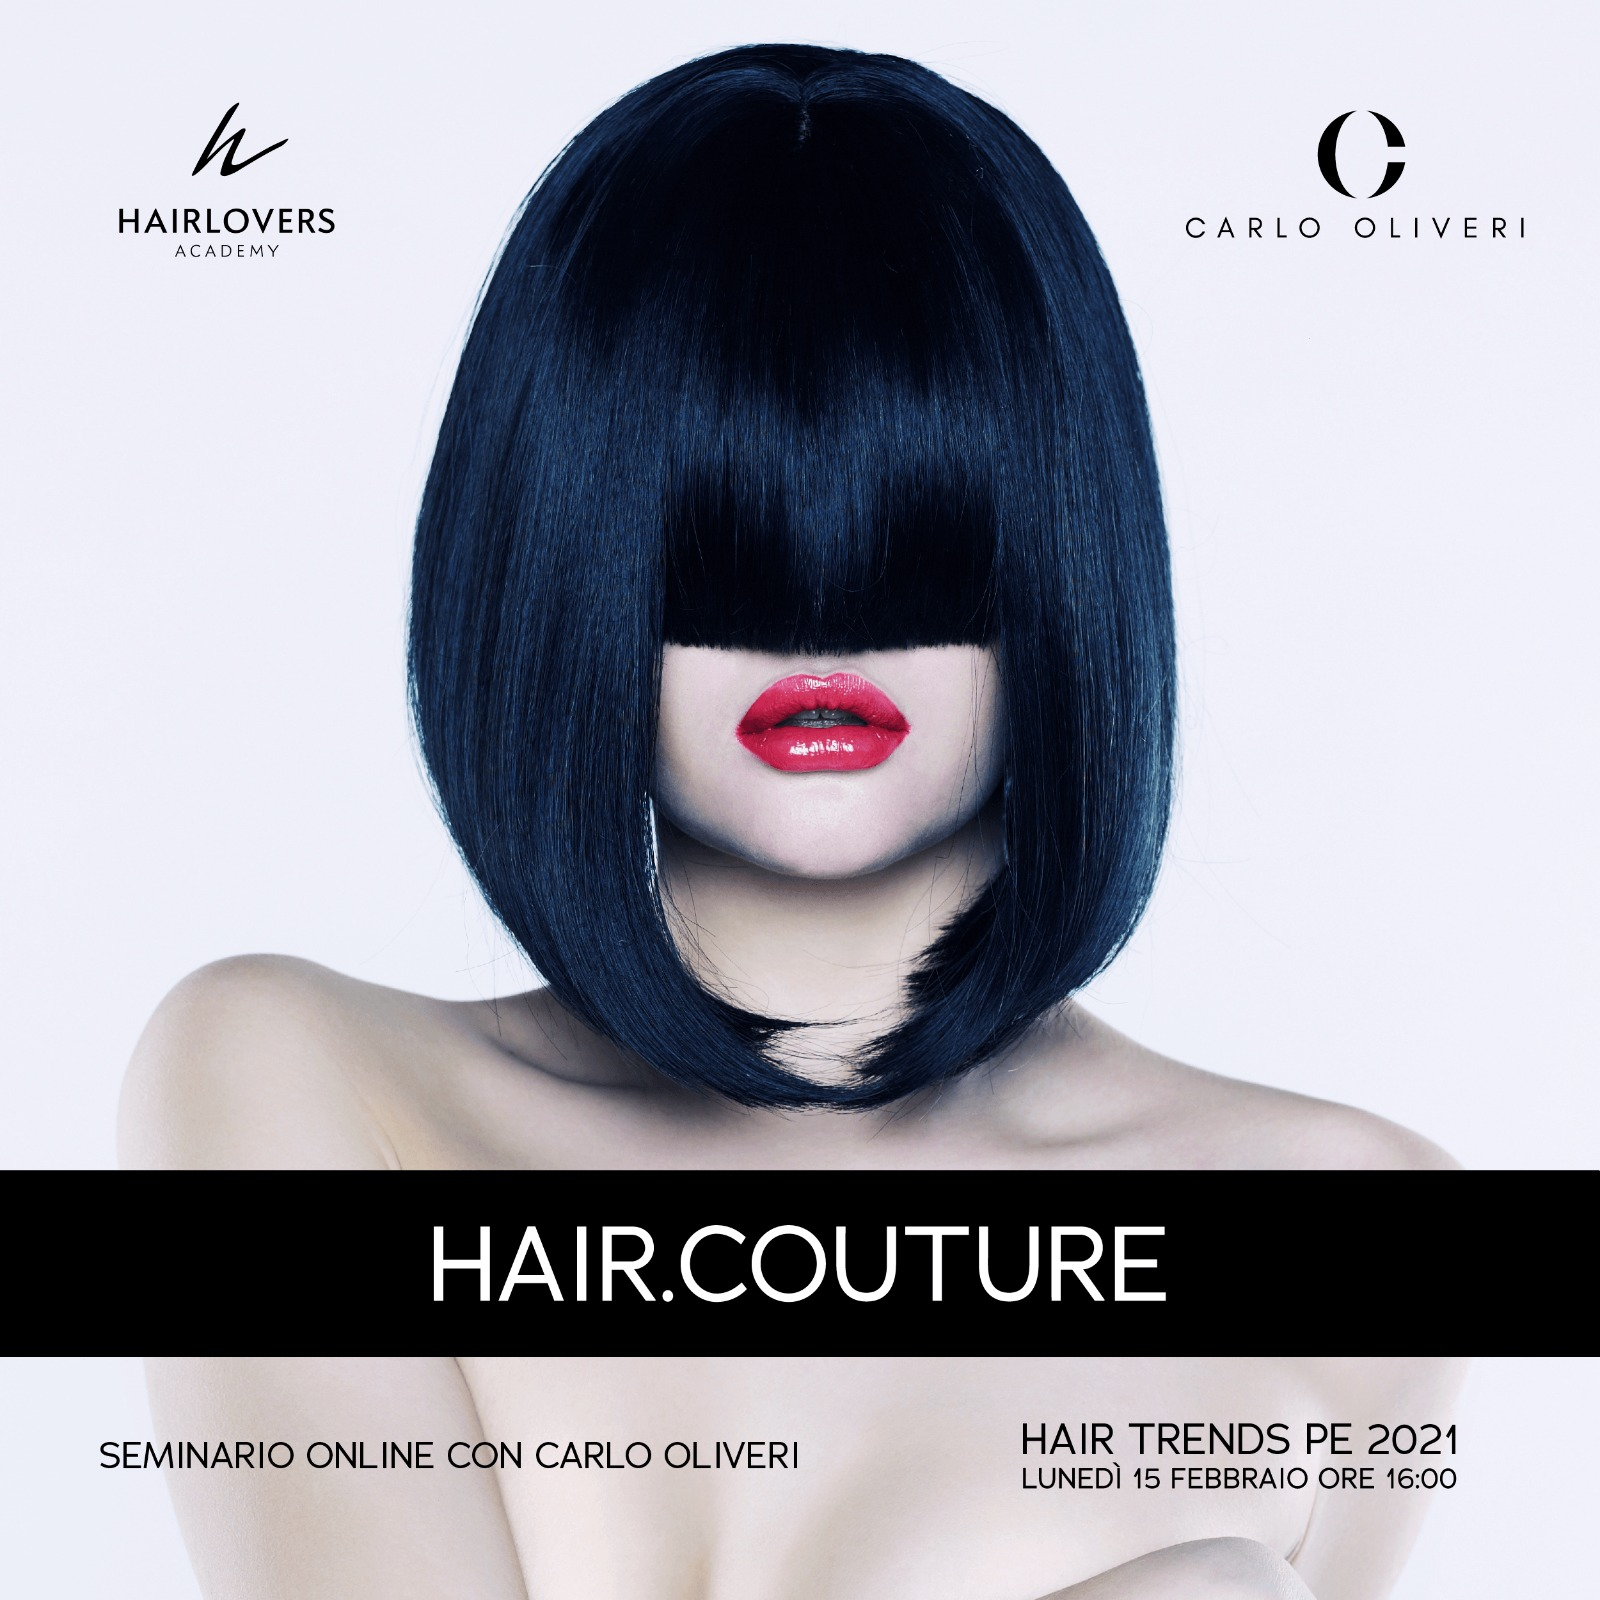 hair-couture-formazione-hairlovers-academy-carlo-oliveri